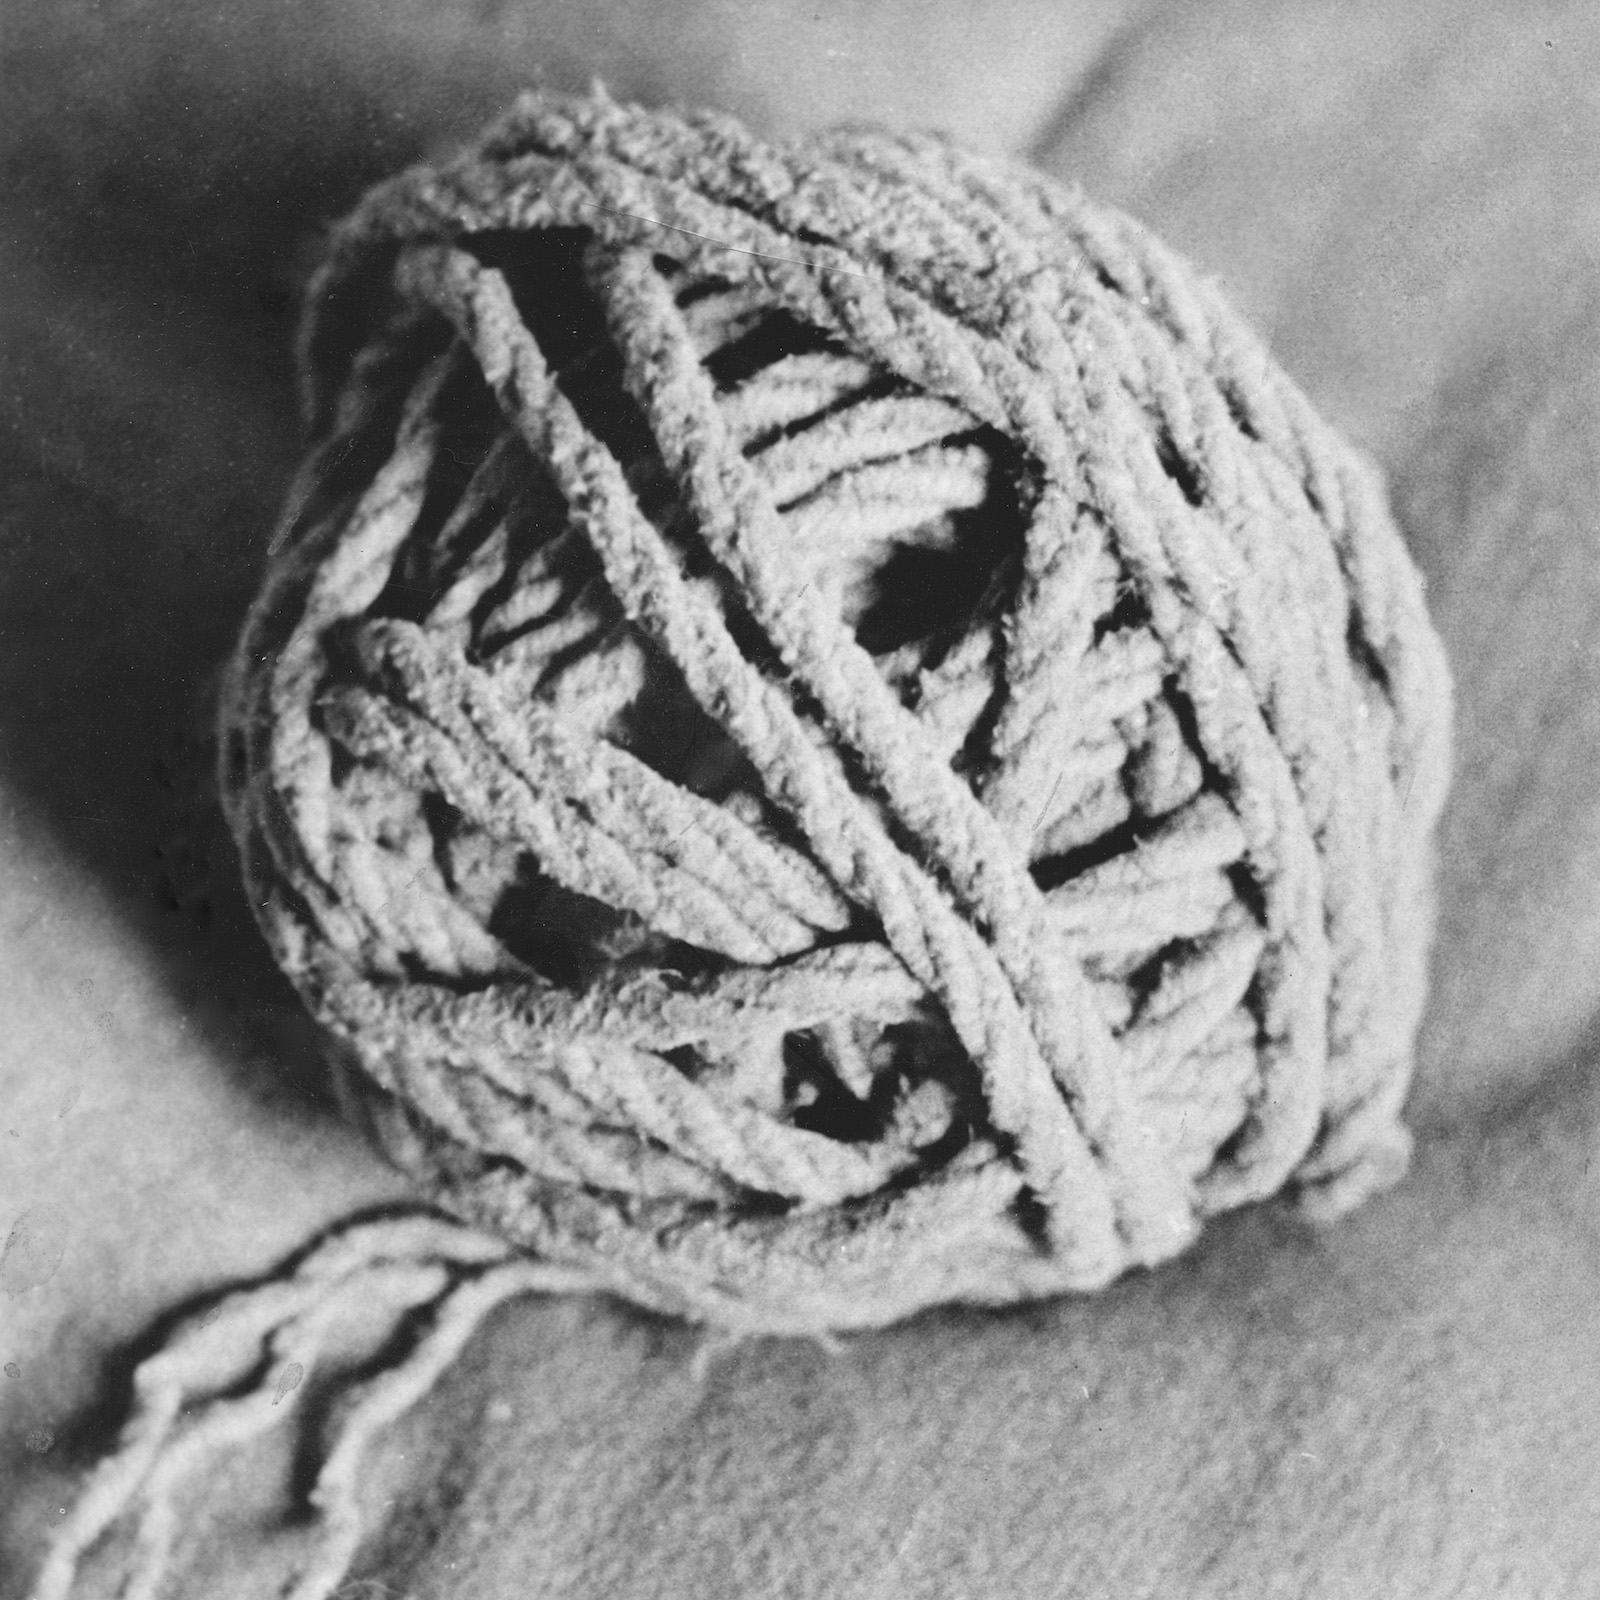 Rope clew, 1976